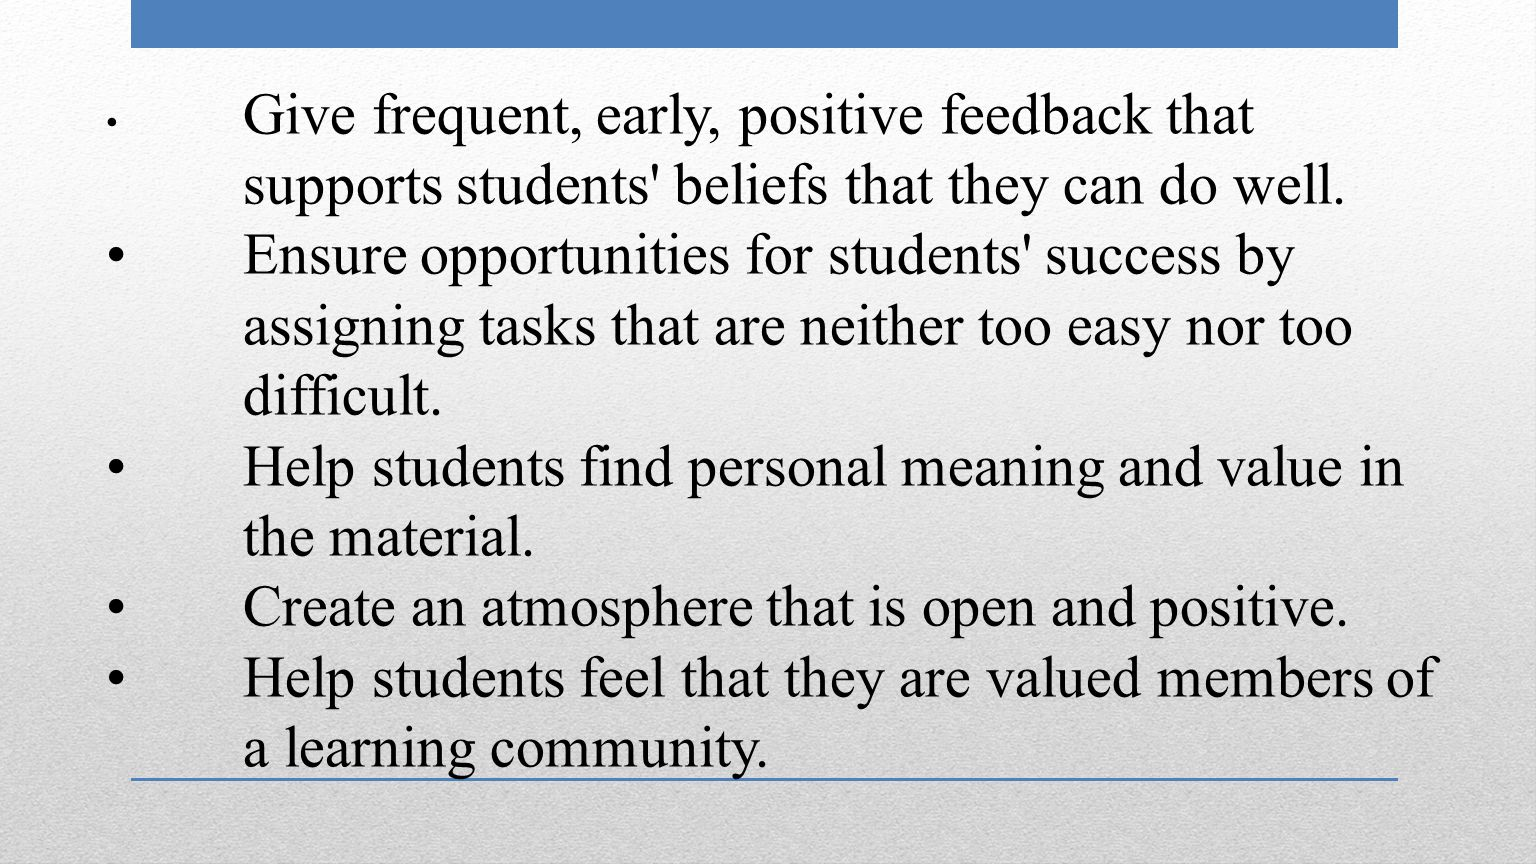 Give frequent, early, positive feedback that supports students beliefs that they can do well.